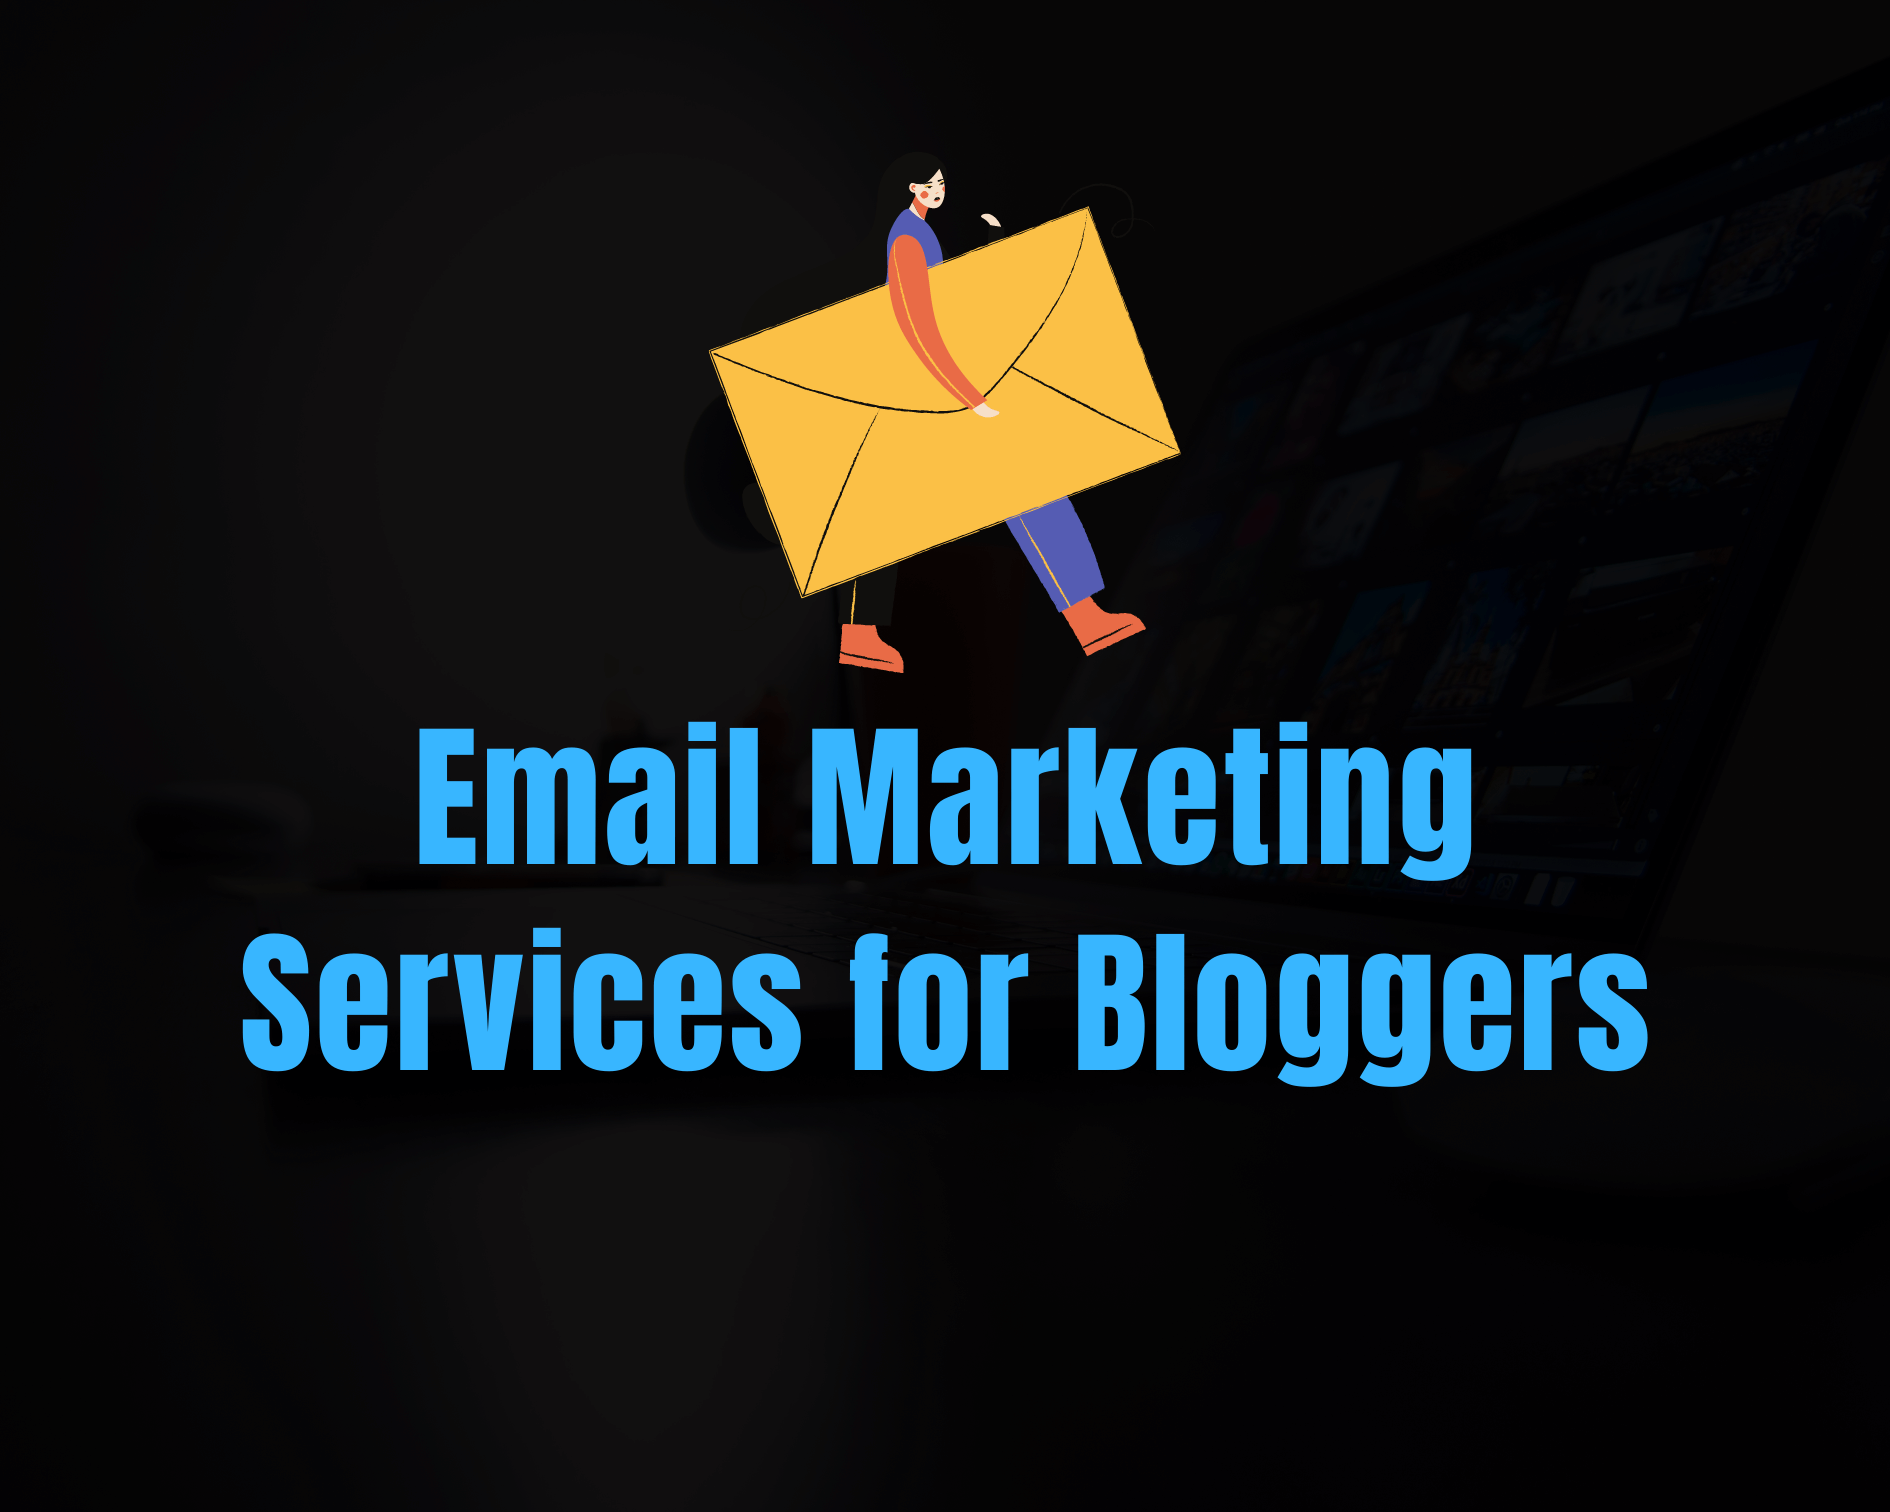 7 Best Email Marketing Services for Bloggers in 2021